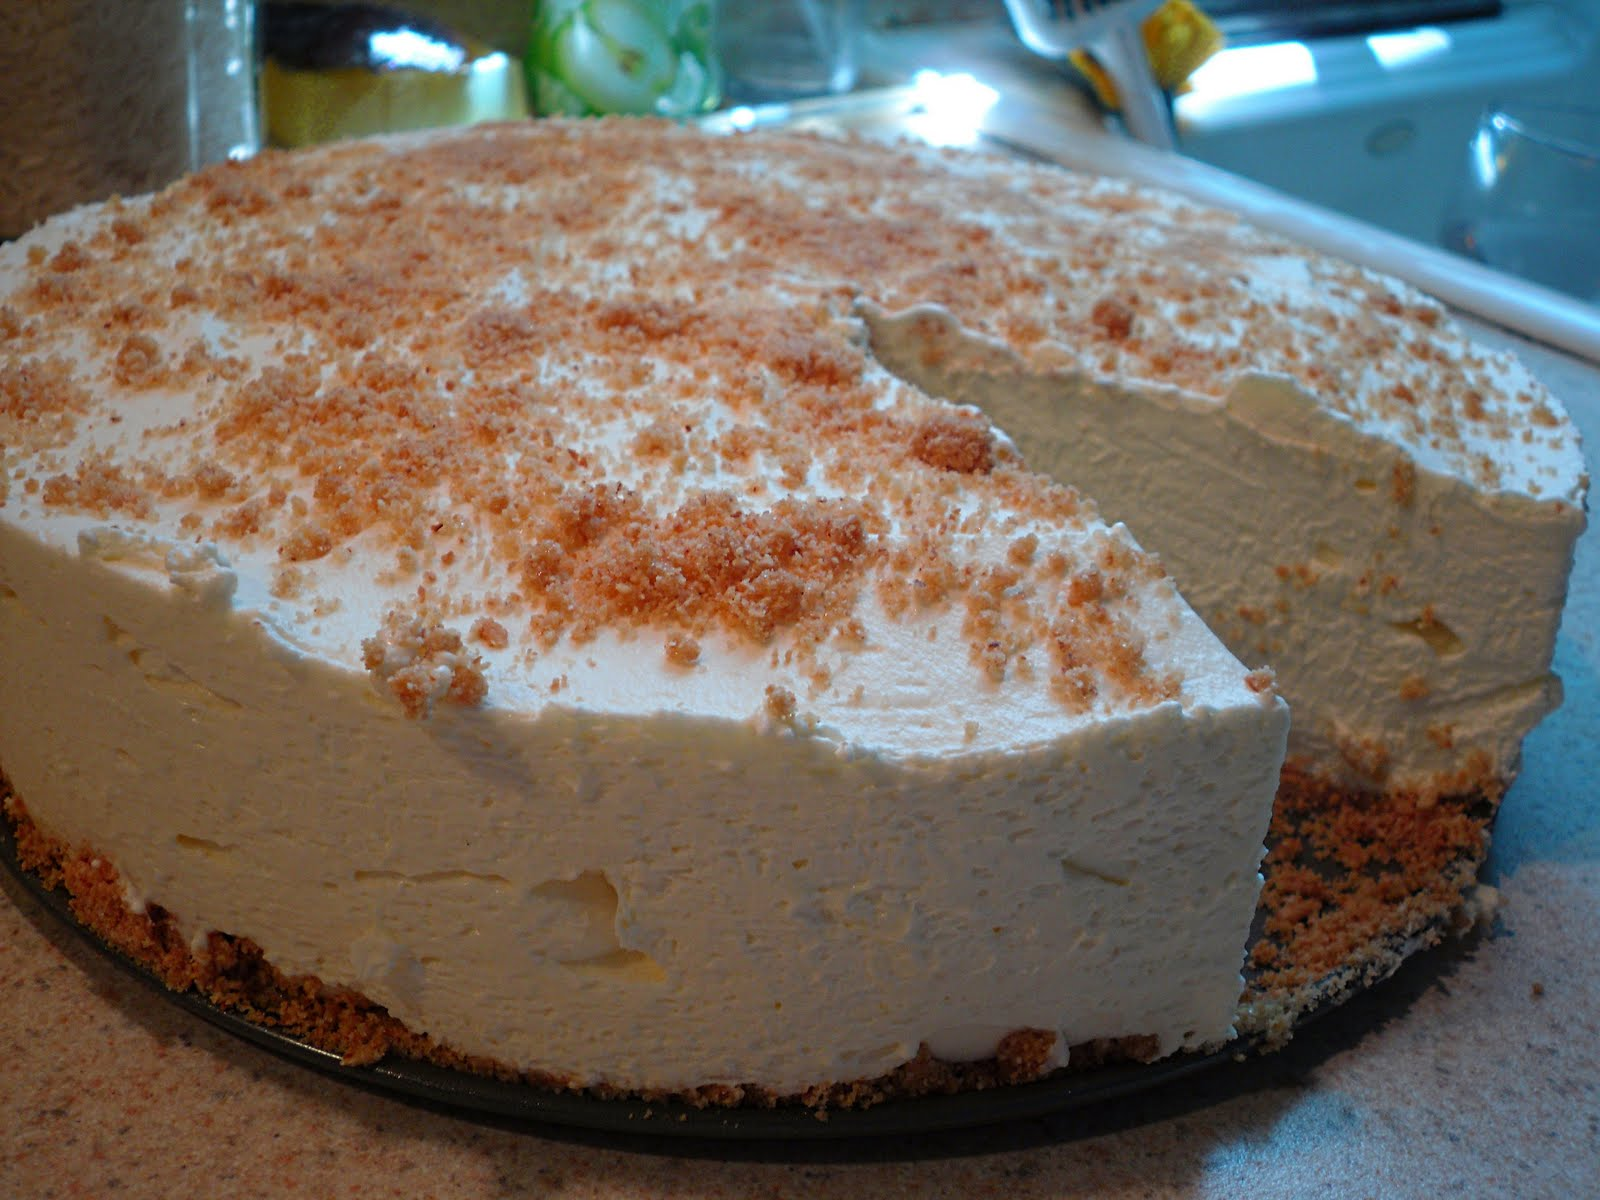 Comfy Cuisine: No-Bake Whipped Cream Cheesecake